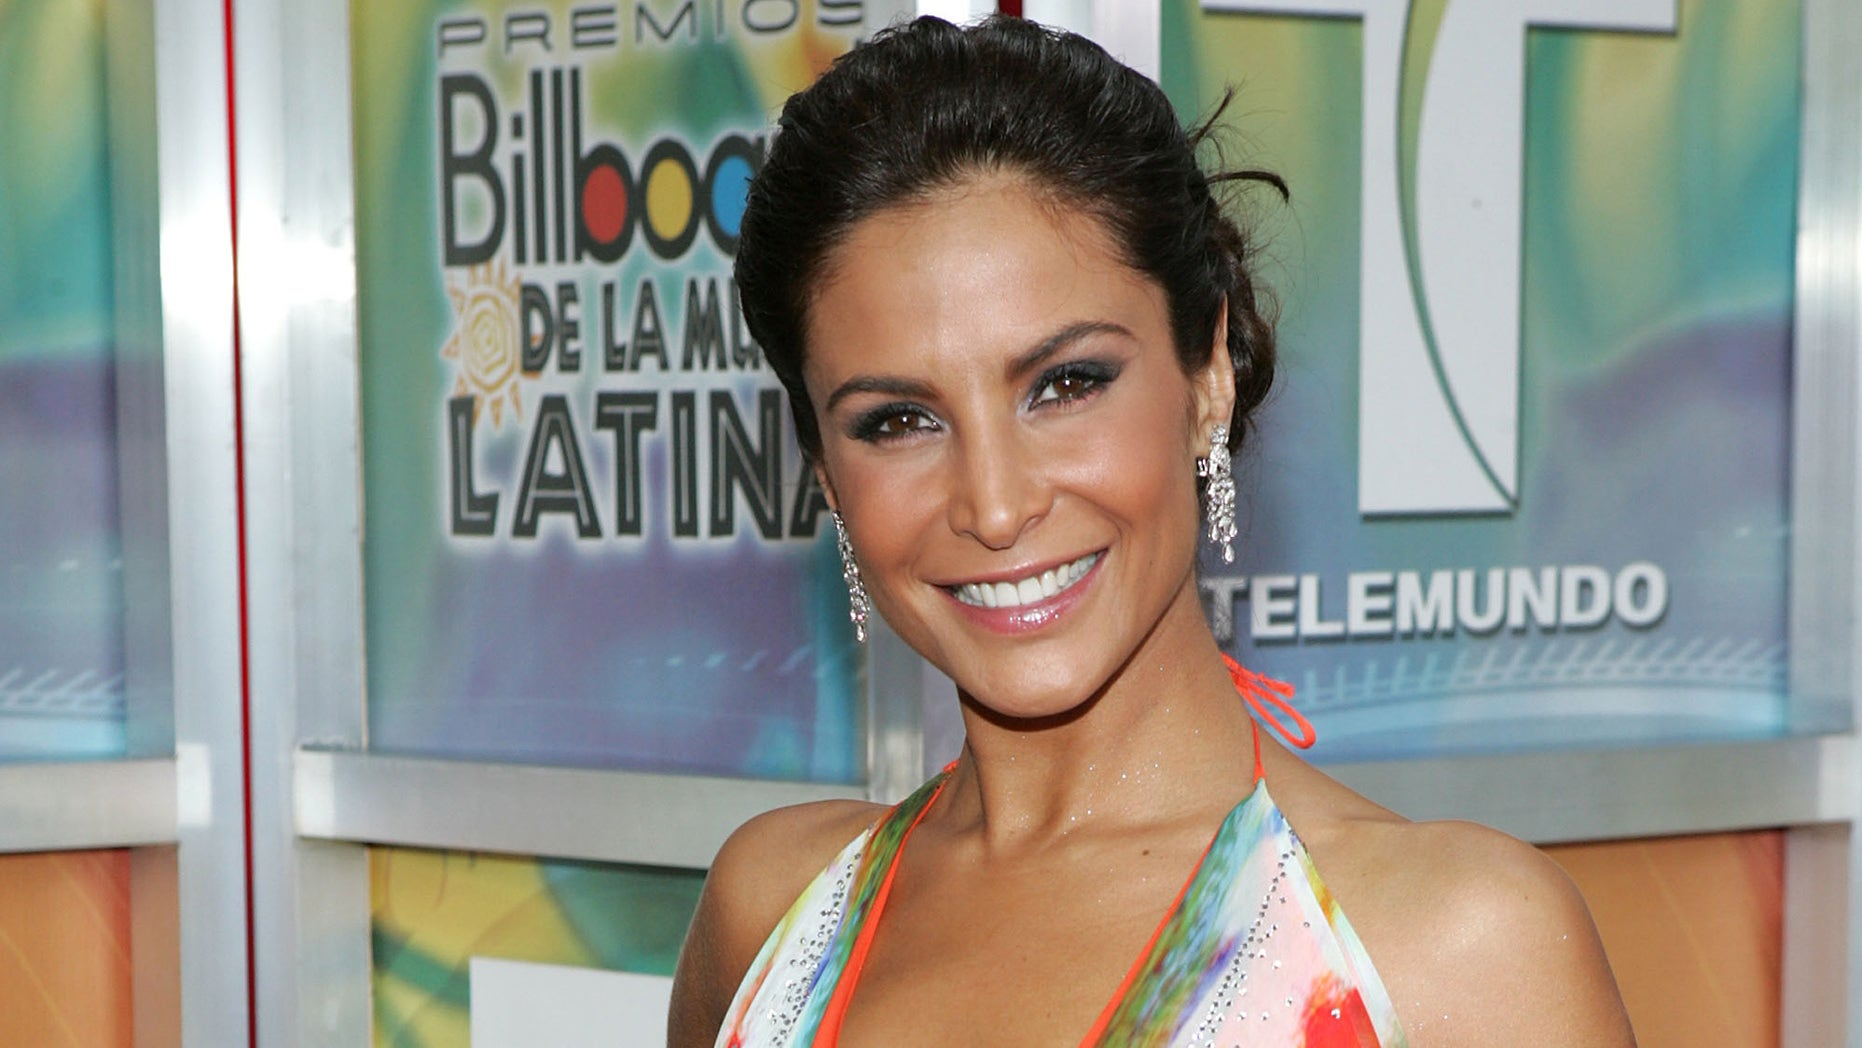 Lorena Rojas arrives at the 2005 Billboard Latin Music Awards on April 28, 2005 in Miami, Florida.